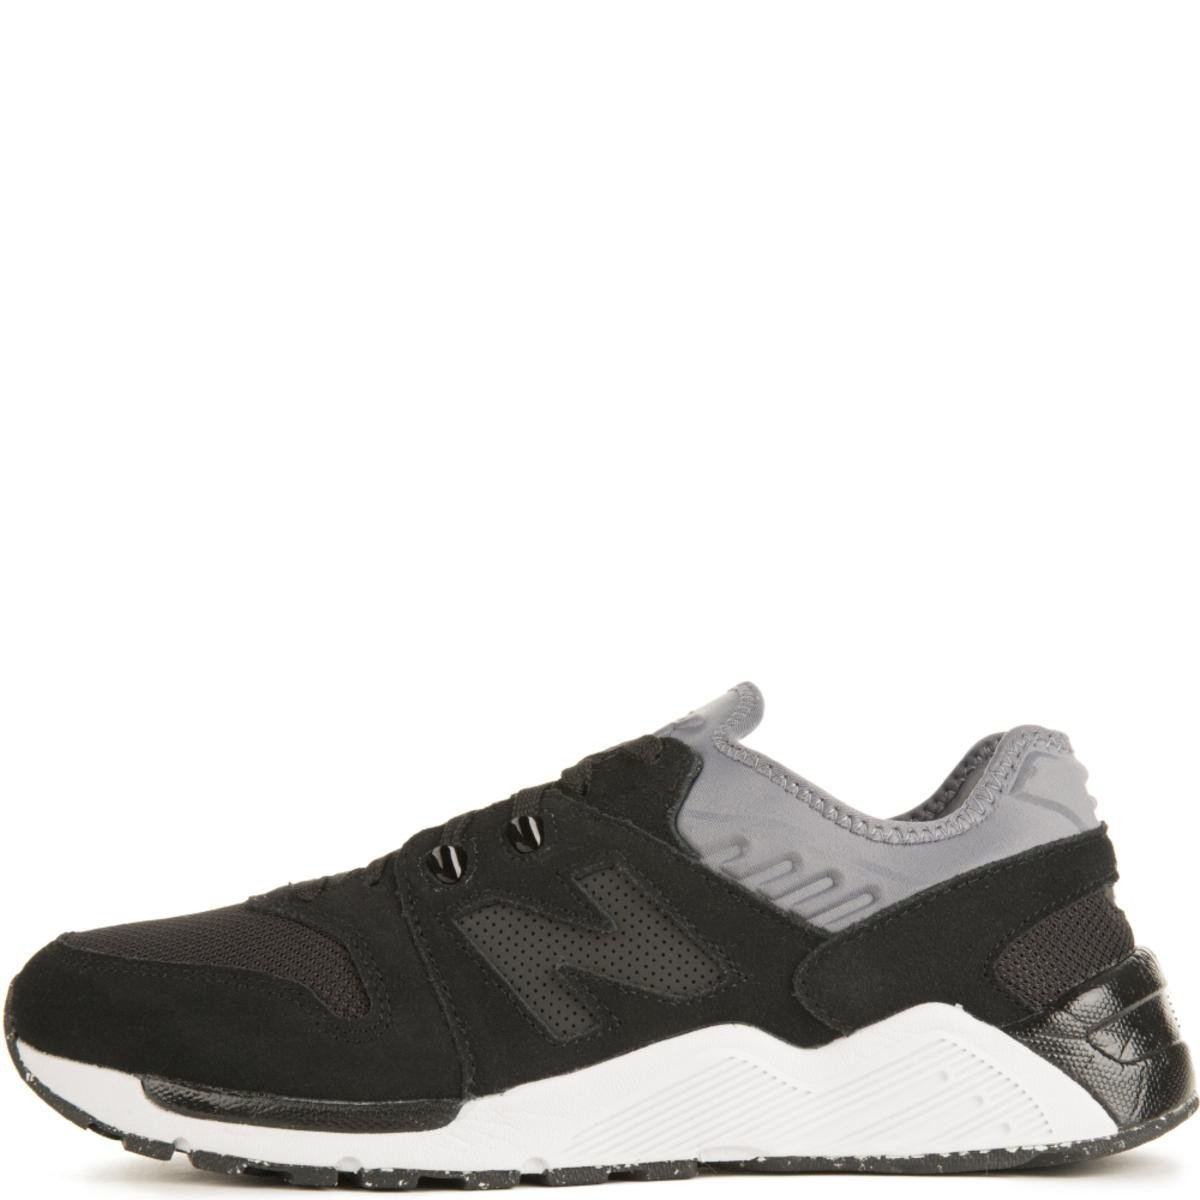 New Balance for Men: 009 Suede Black/Gunmetal Sneakers